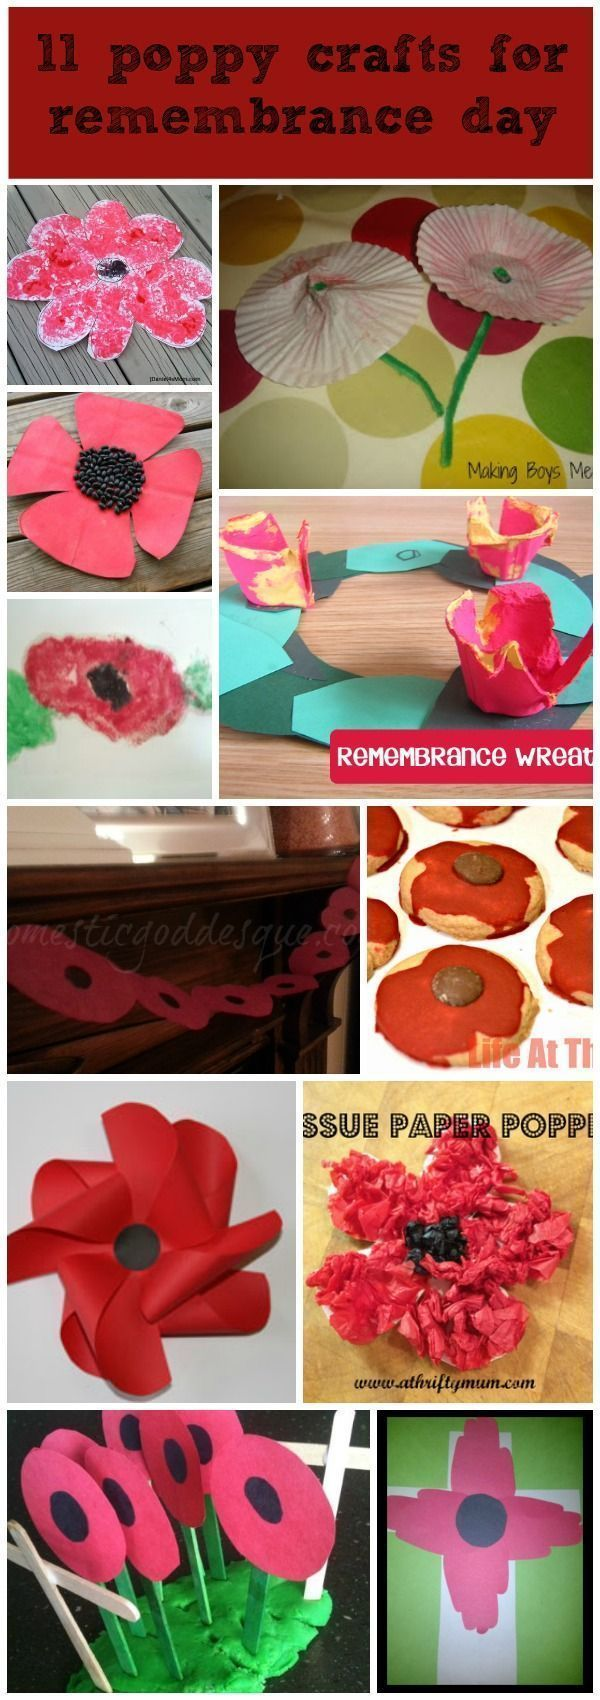 11 poppy crafts, art or food for remembrance day #remembrancedaycraftsforkids 11 poppy crafts for Remembrance Day or Memorial Day www.operationwearehere.com/memorialday.html #remembrancedaycraftsforkids 11 poppy crafts, art or food for remembrance day #remembrancedaycraftsforkids 11 poppy crafts for Remembrance Day or Memorial Day www.operationwearehere.com/memorialday.html #poppycraftsforkids 11 poppy crafts, art or food for remembrance day #remembrancedaycraftsforkids 11 poppy crafts for Remem #poppycraftsforkids